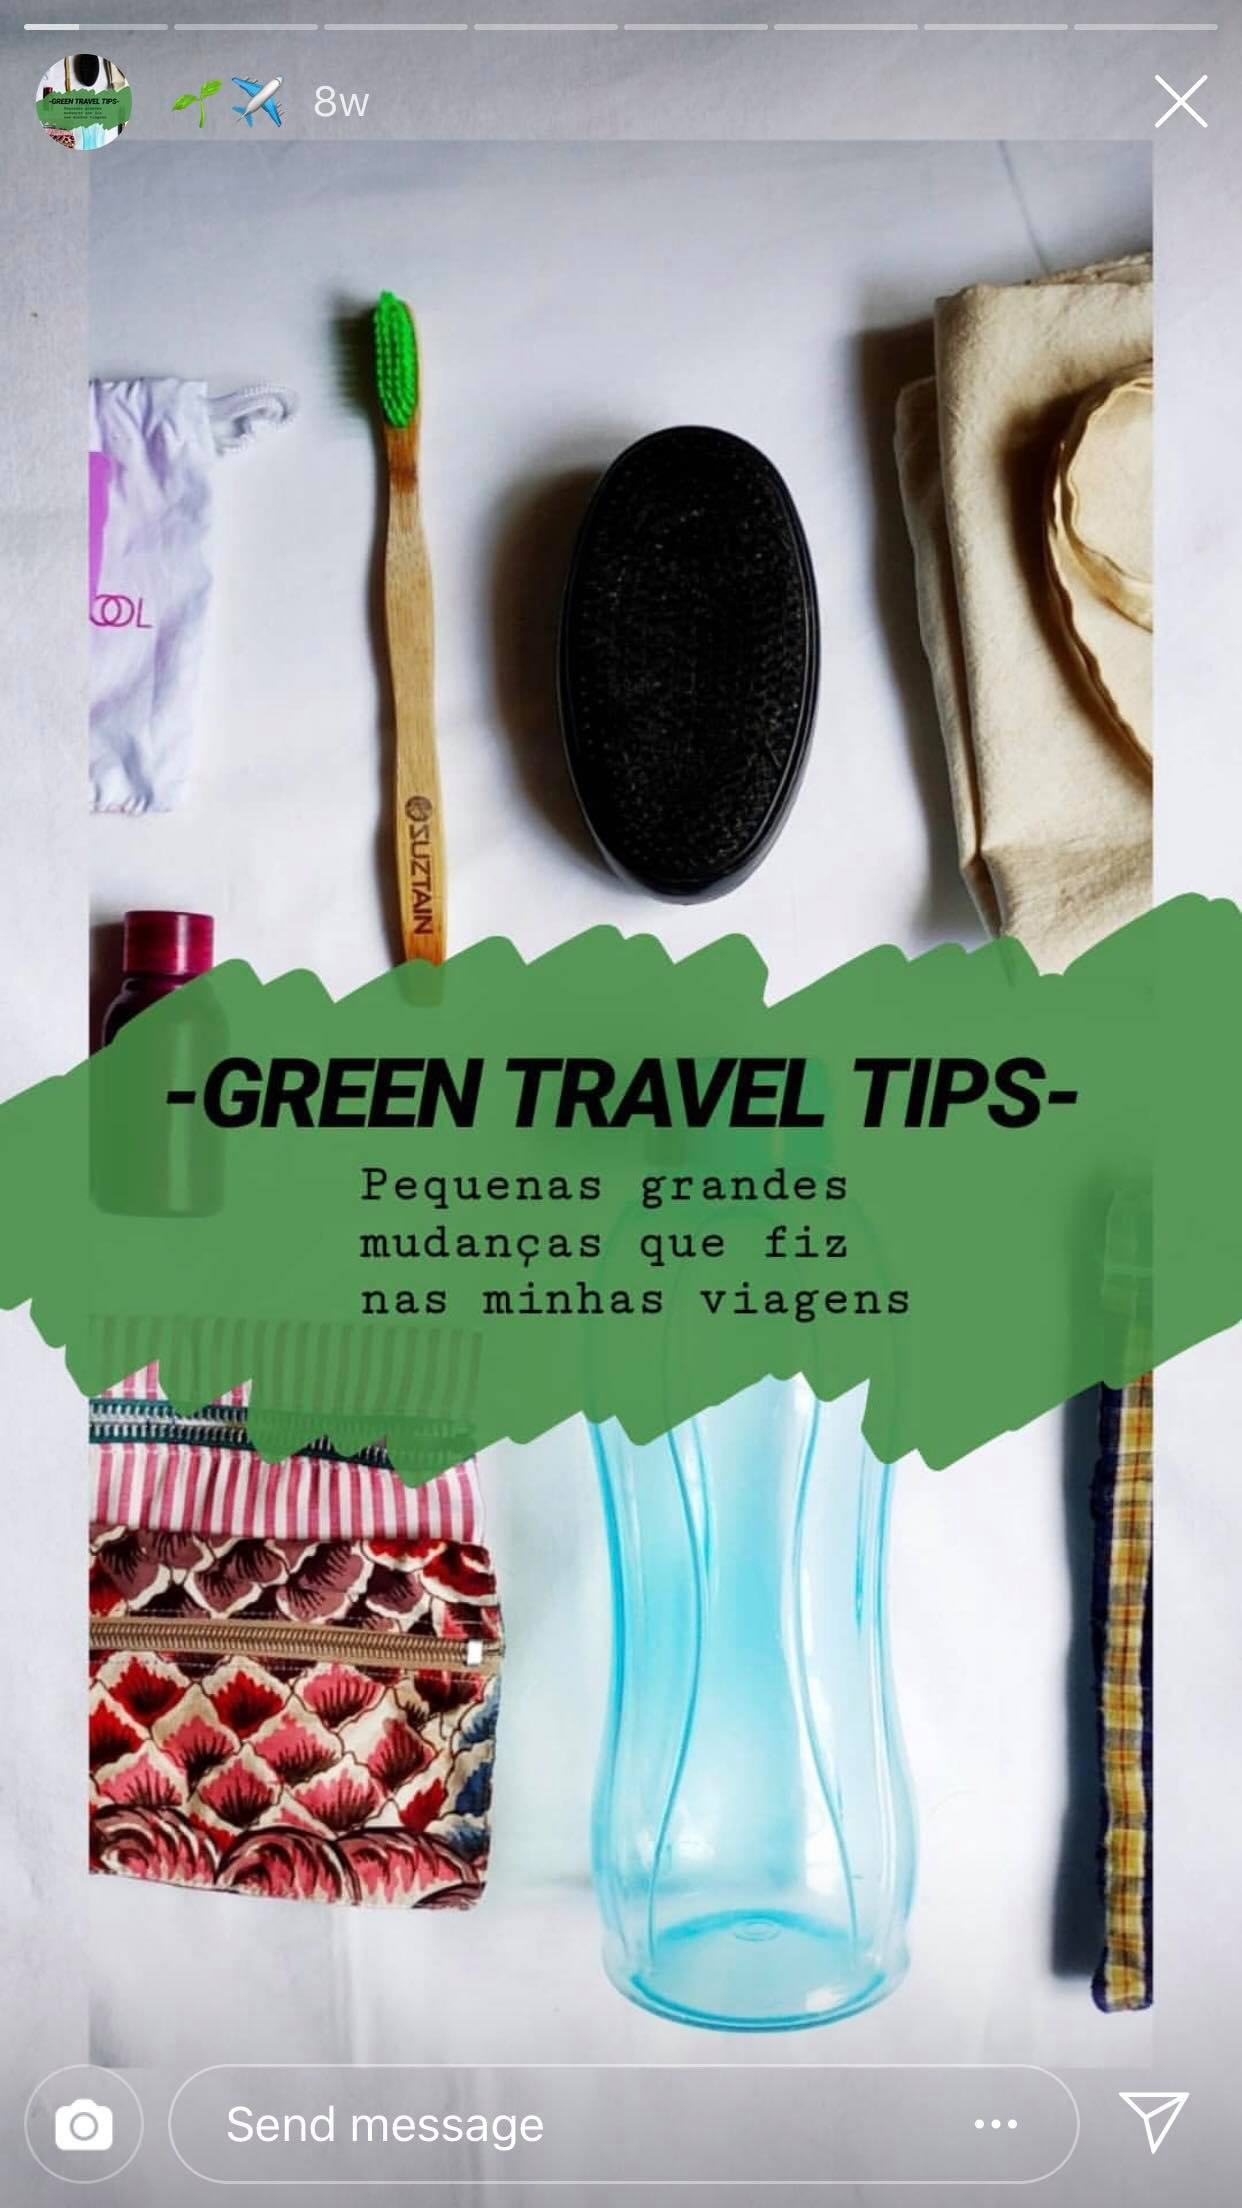 Instagram post by Patricia Nogueira on how to travel green